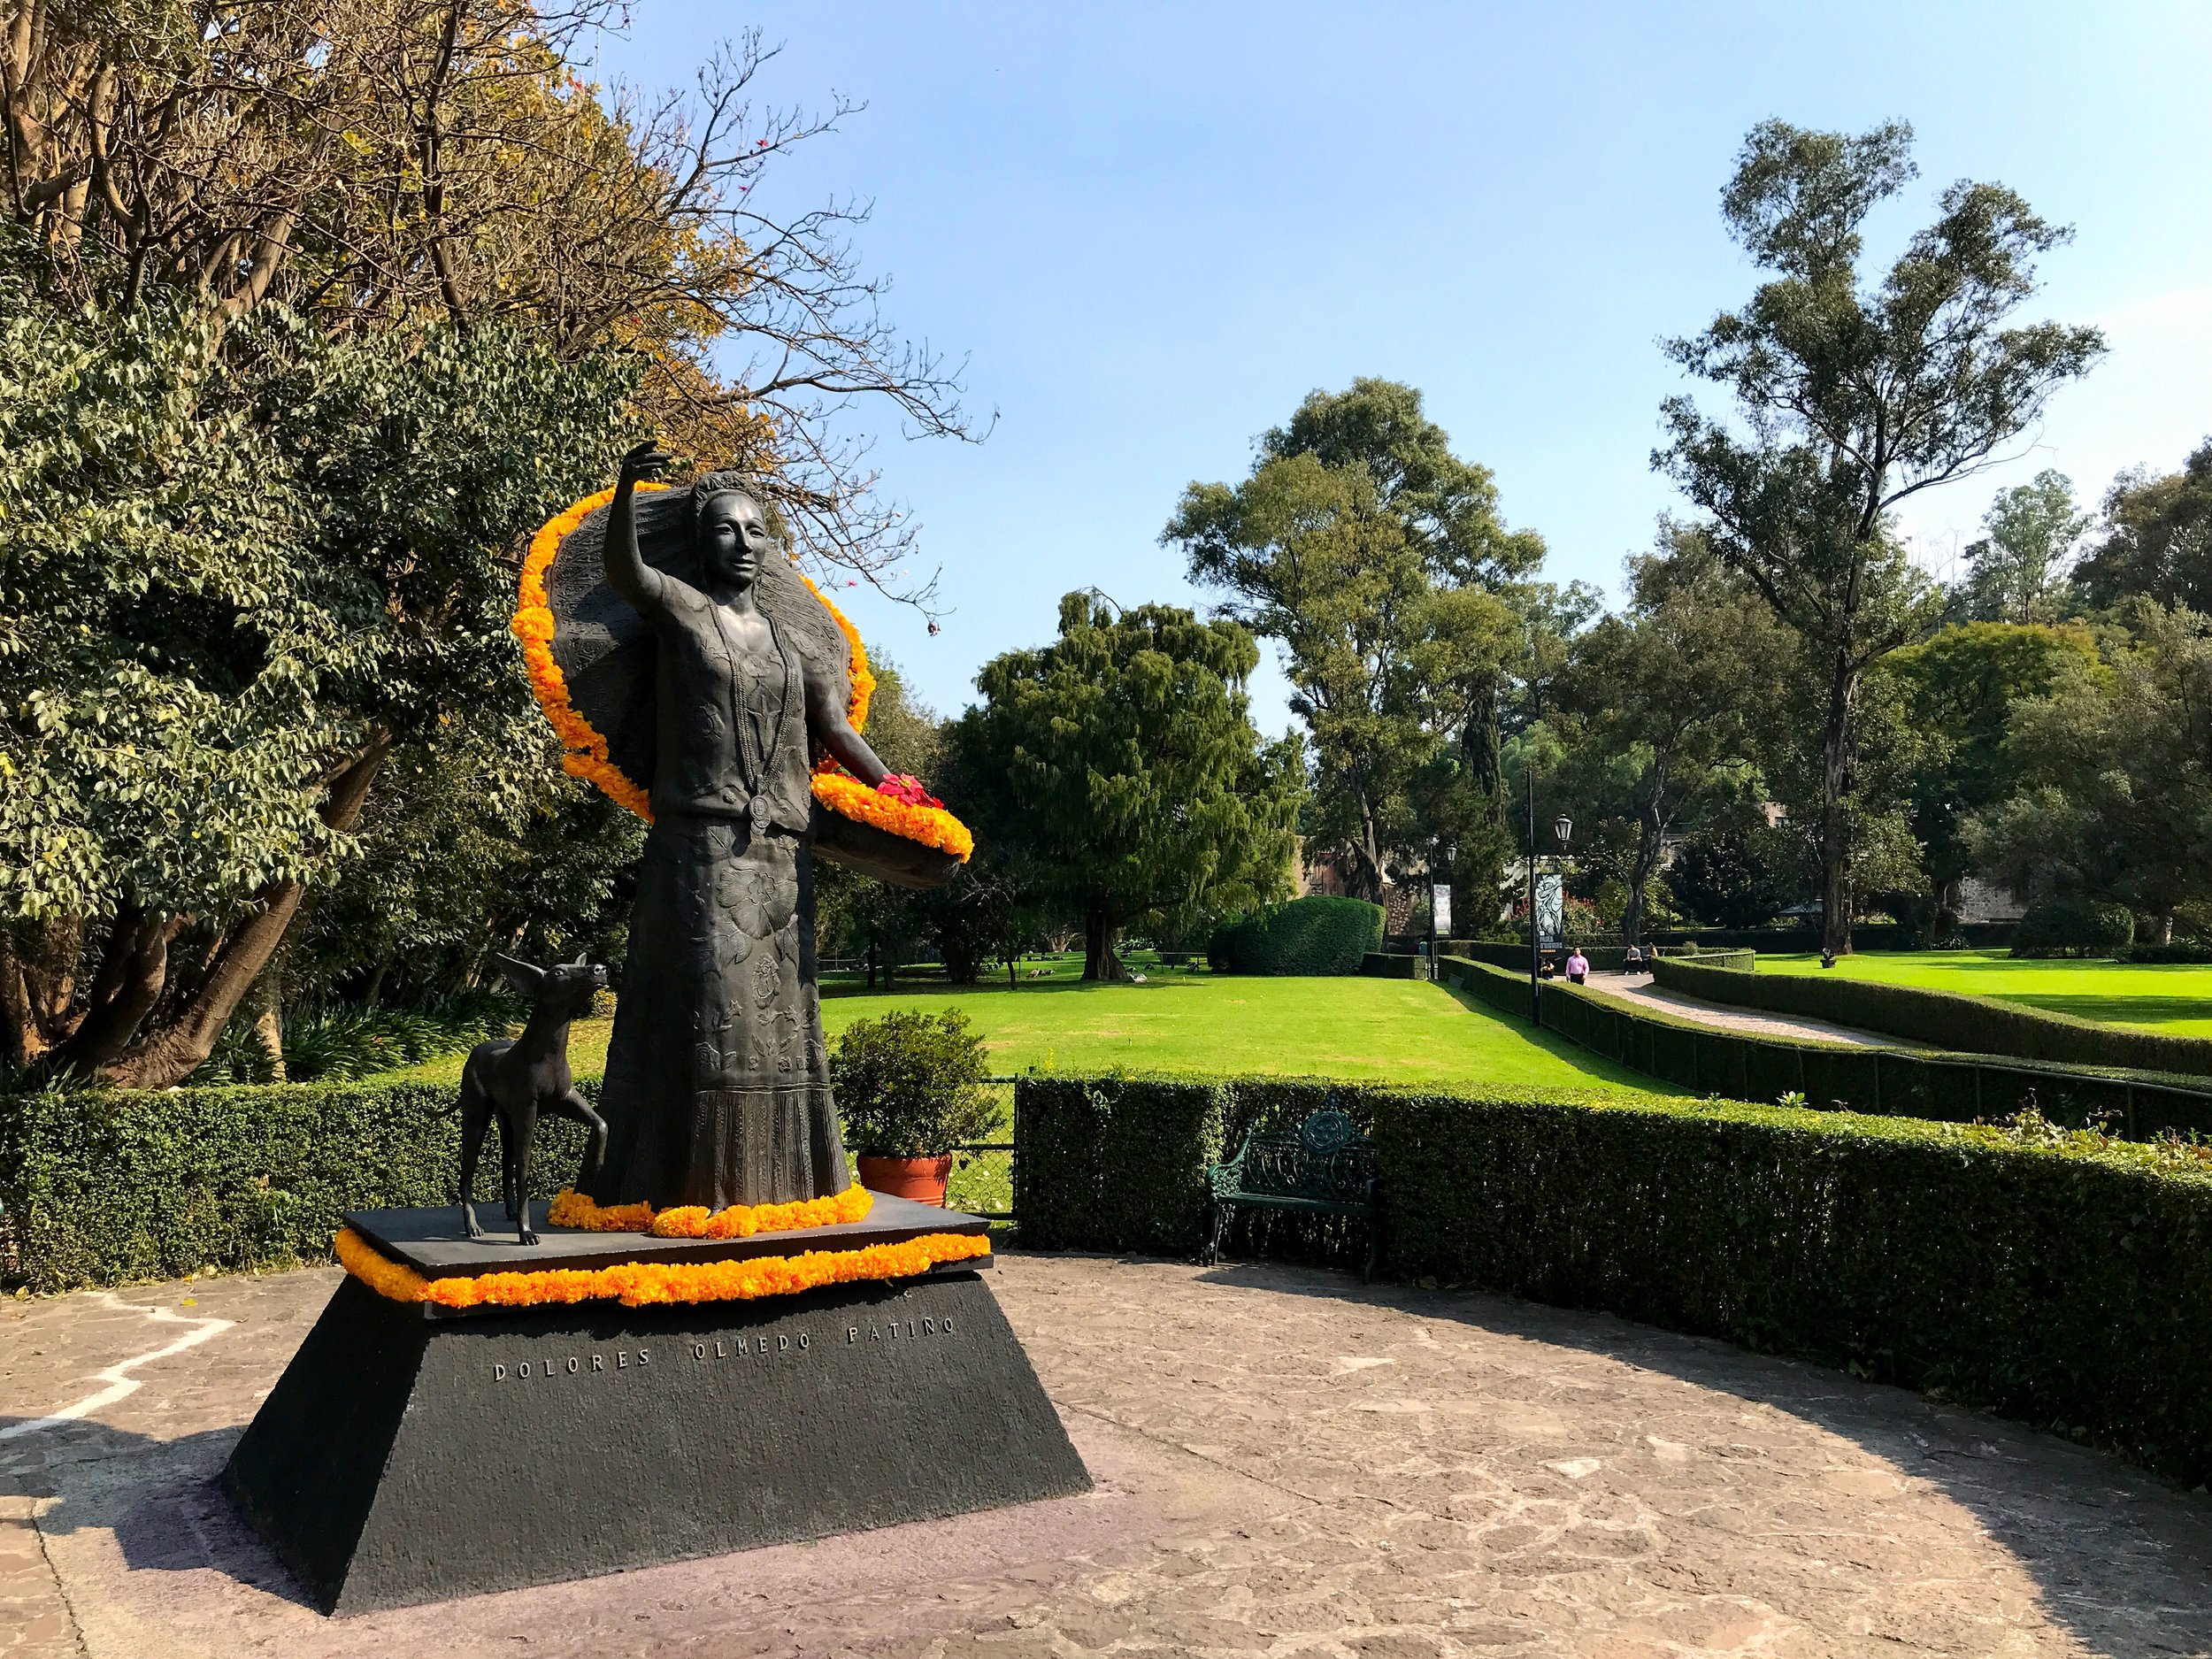 A statue of Doña Lola, patroness of the arts, with one of her beloved Xolo dogs